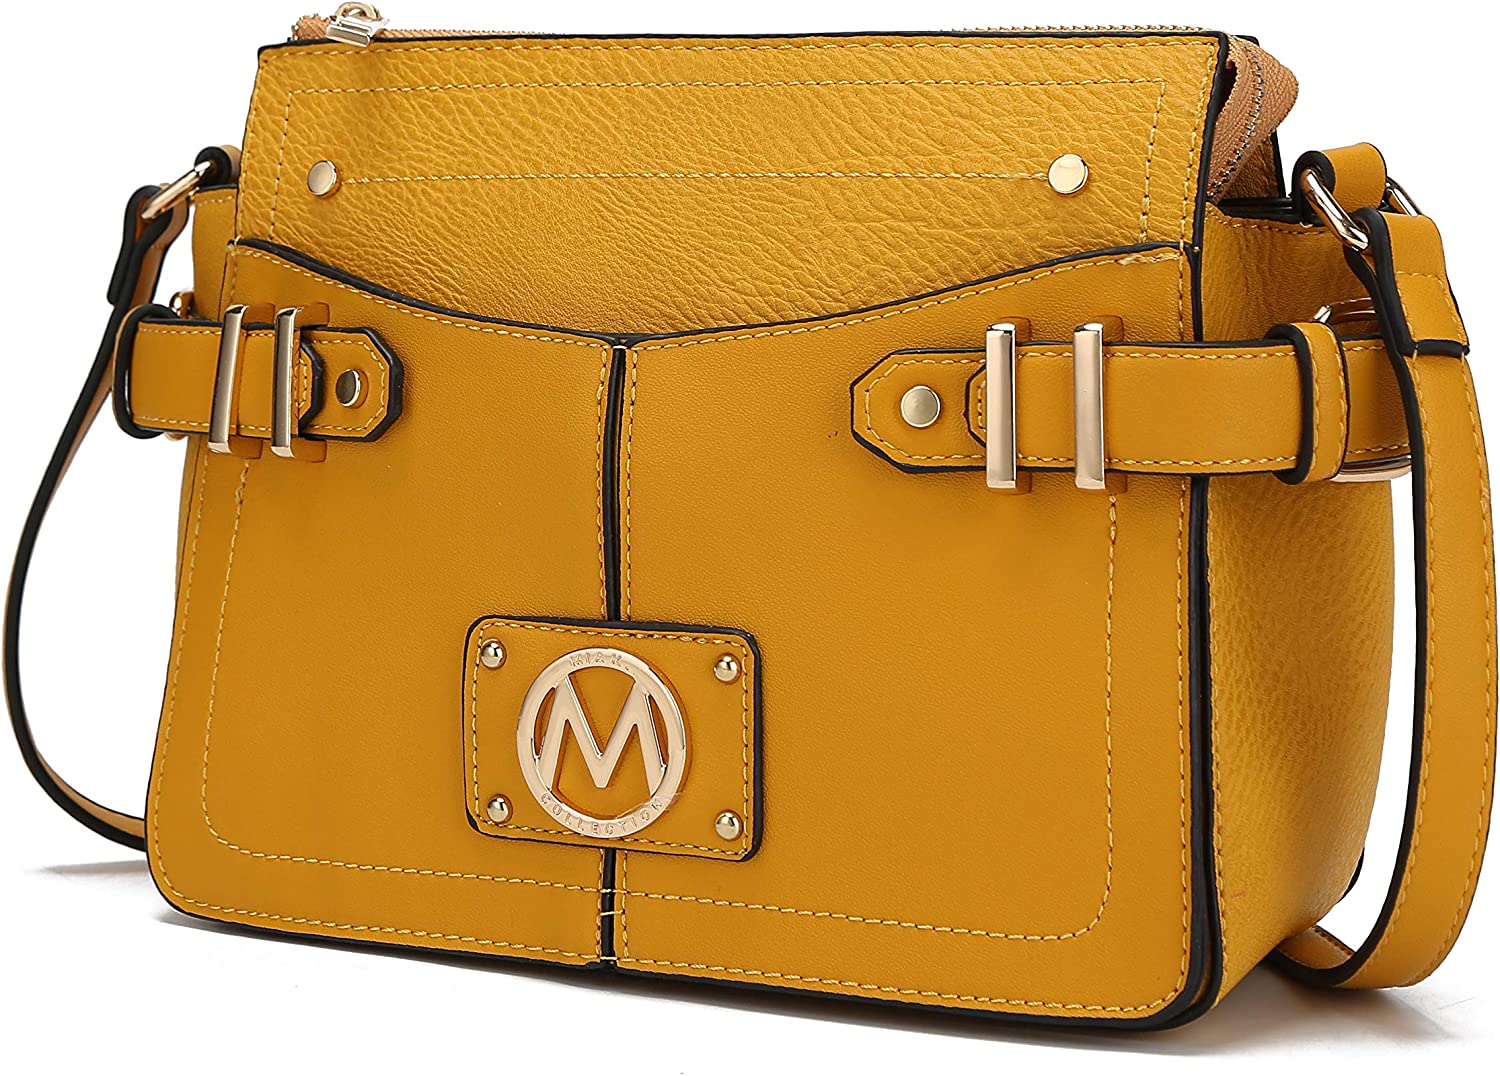 MKF Crossbody Popular products Bag for Women Challenge the lowest price Handbag Pocketbook Leather PU –